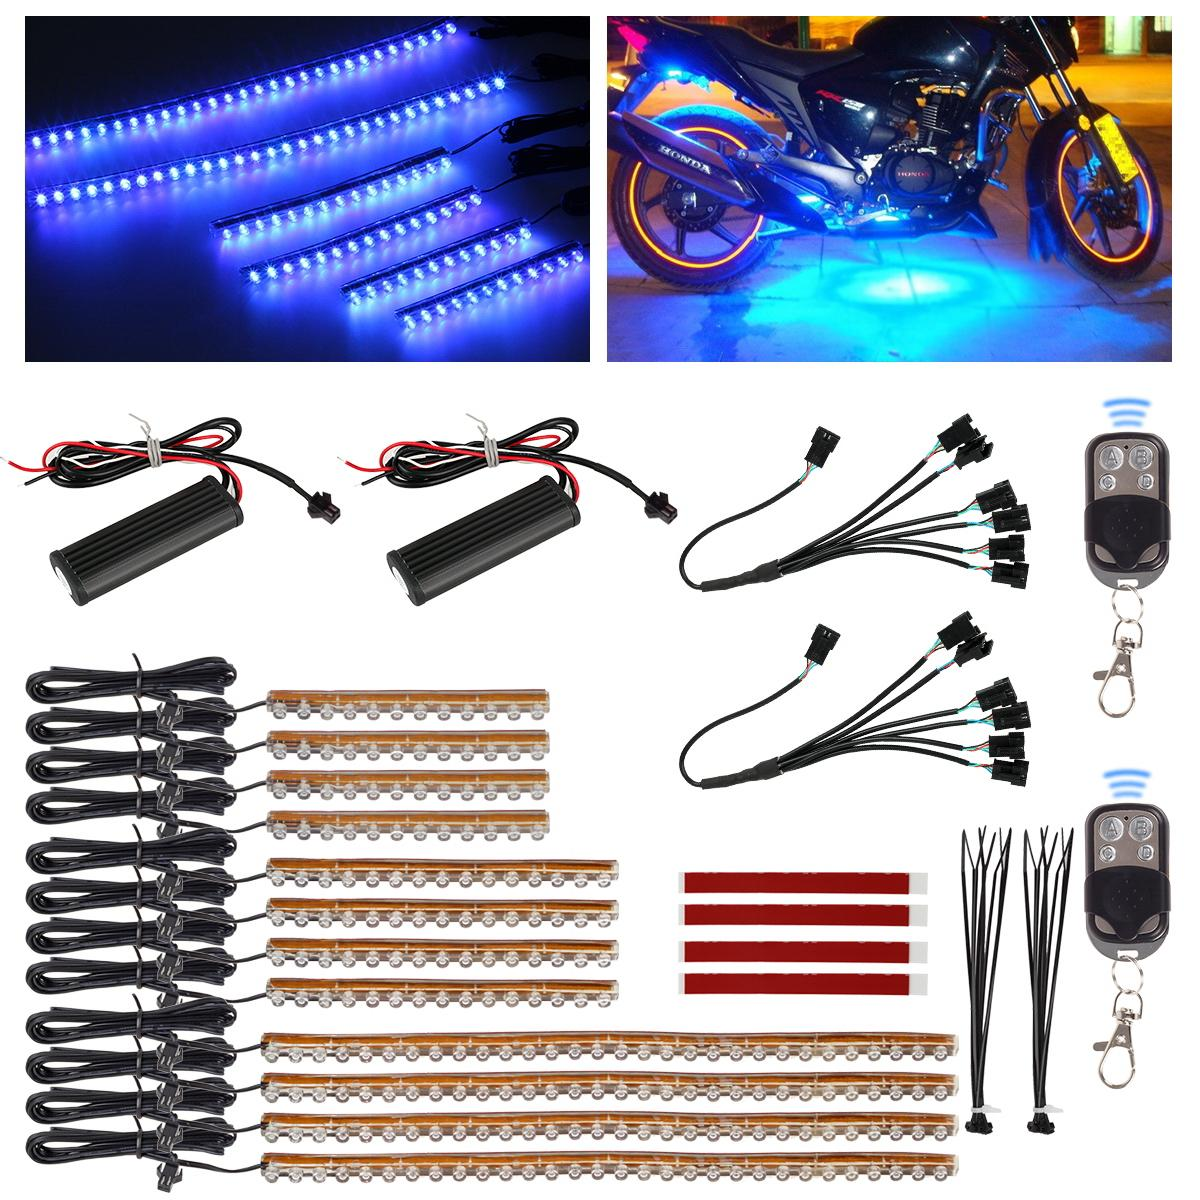 Motorcycle Engine Tools: 12pcs Blue LED Flexible Strip Motorcycle Engine Accent